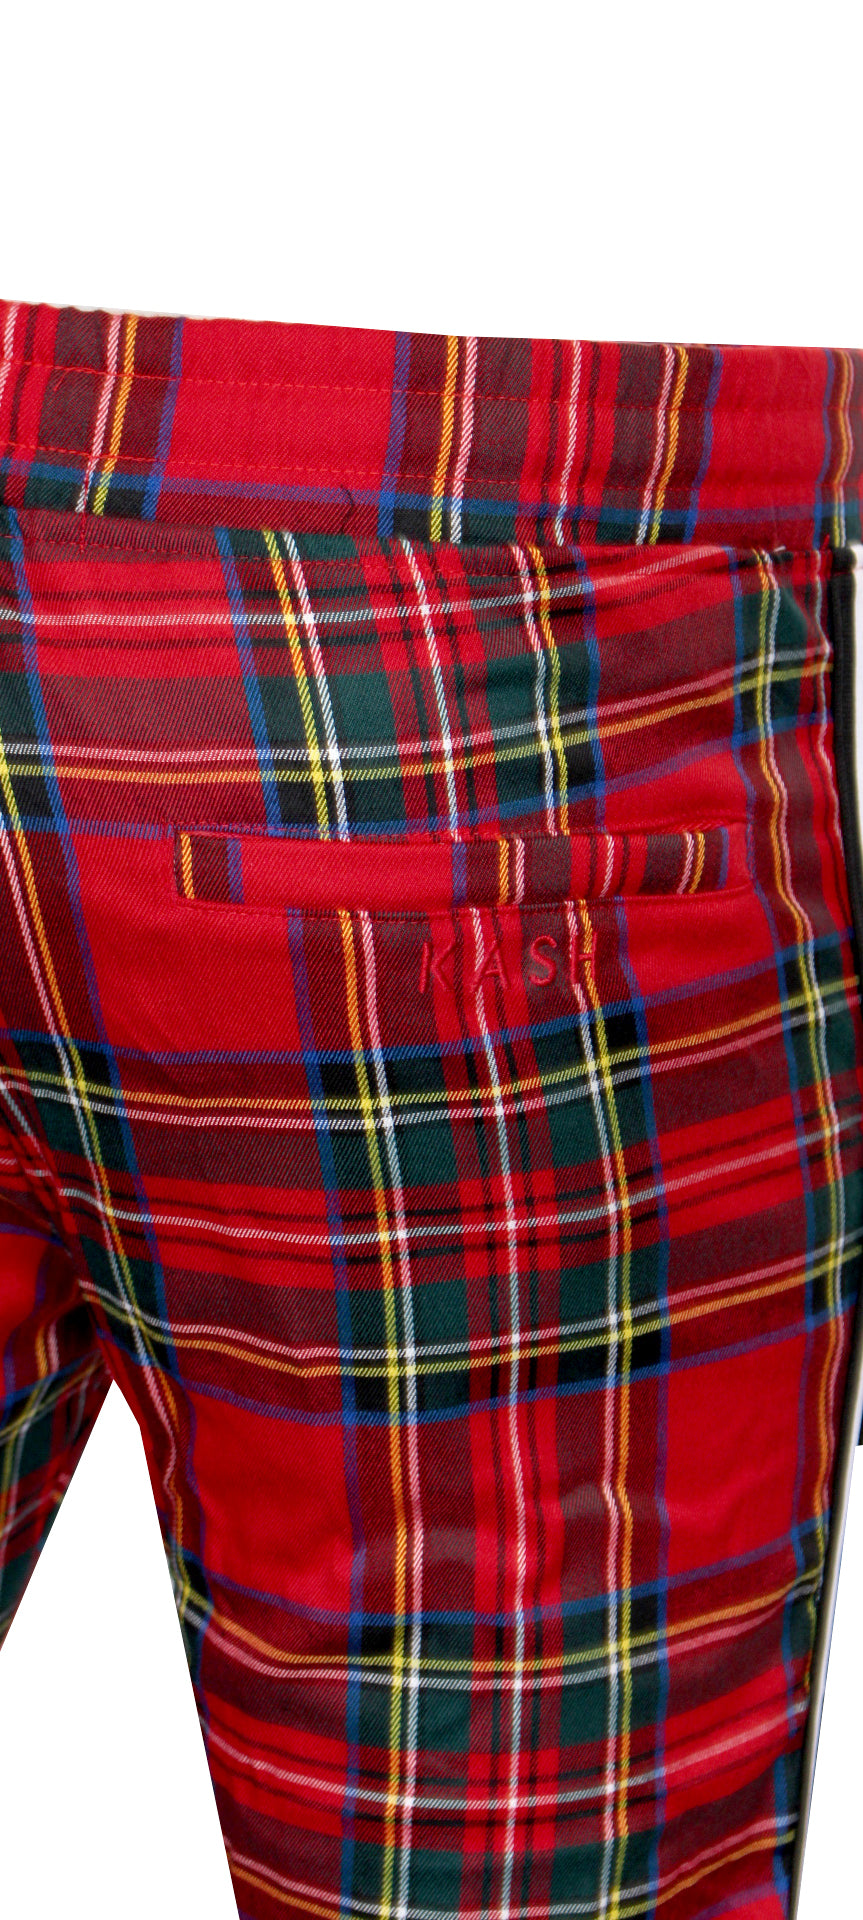 Men's Plaid Track Pants from 'Private School Collection'-Red